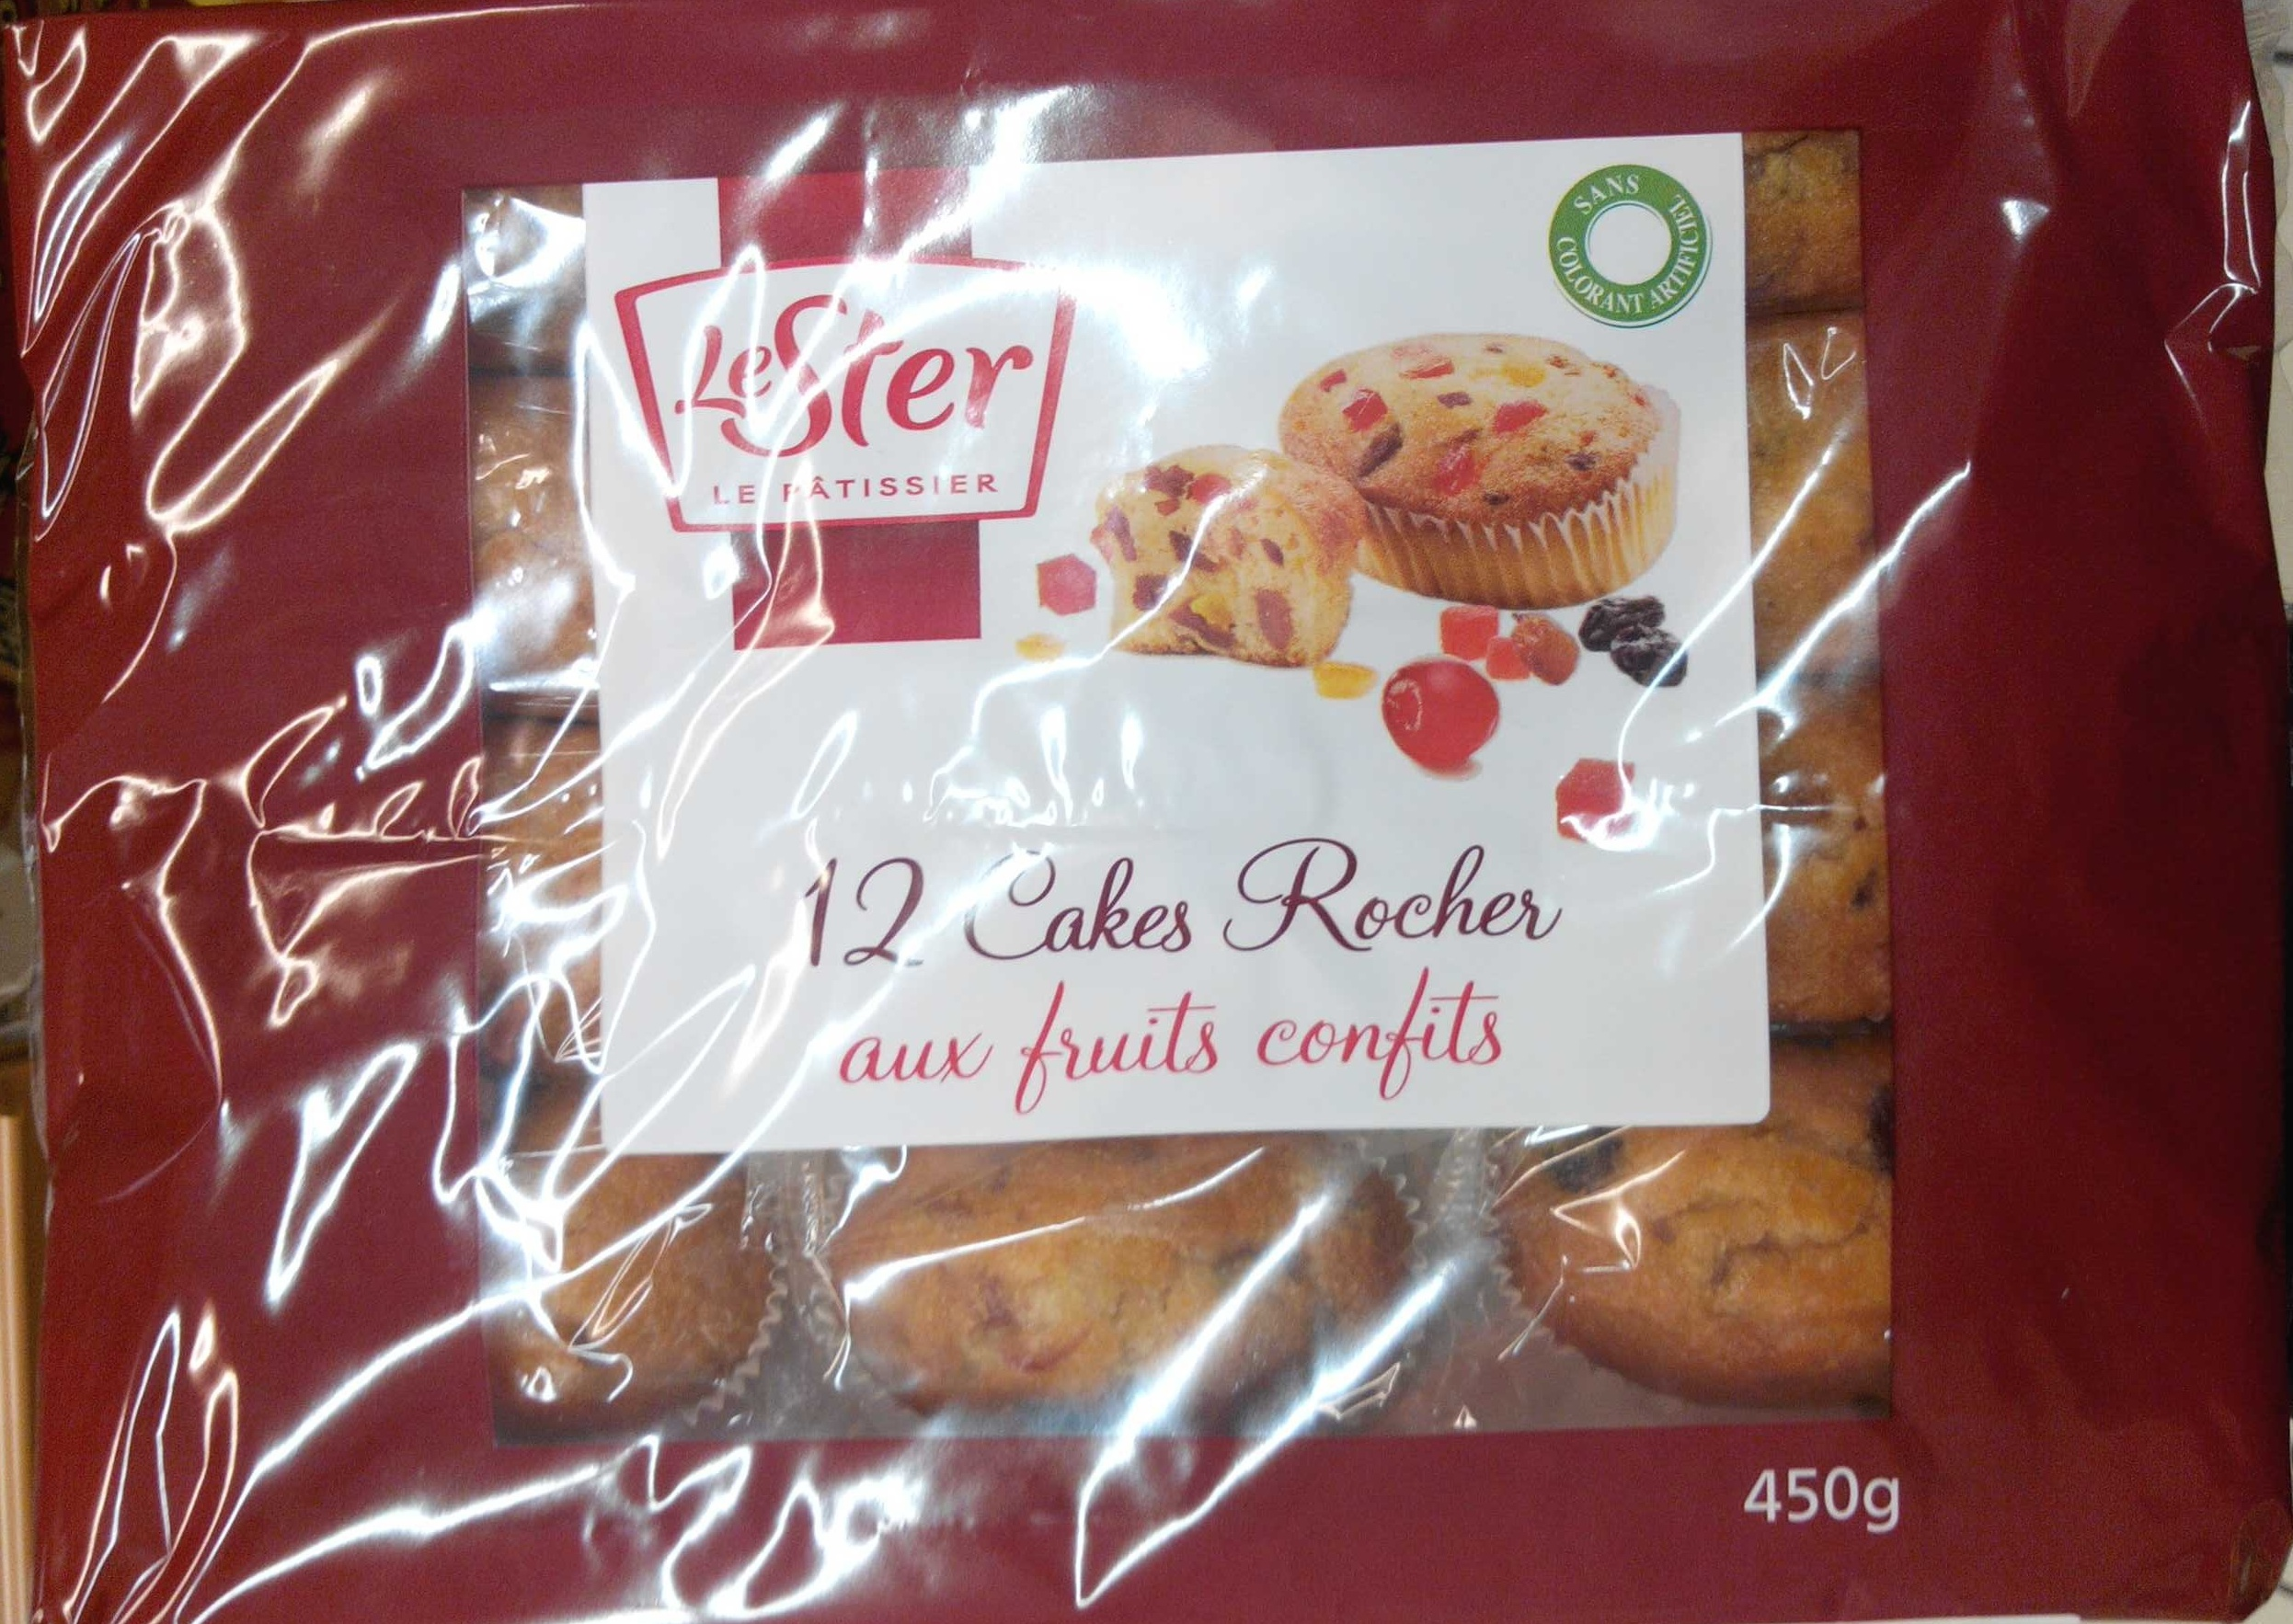 12 cakes rocher aux fruits confits - Product